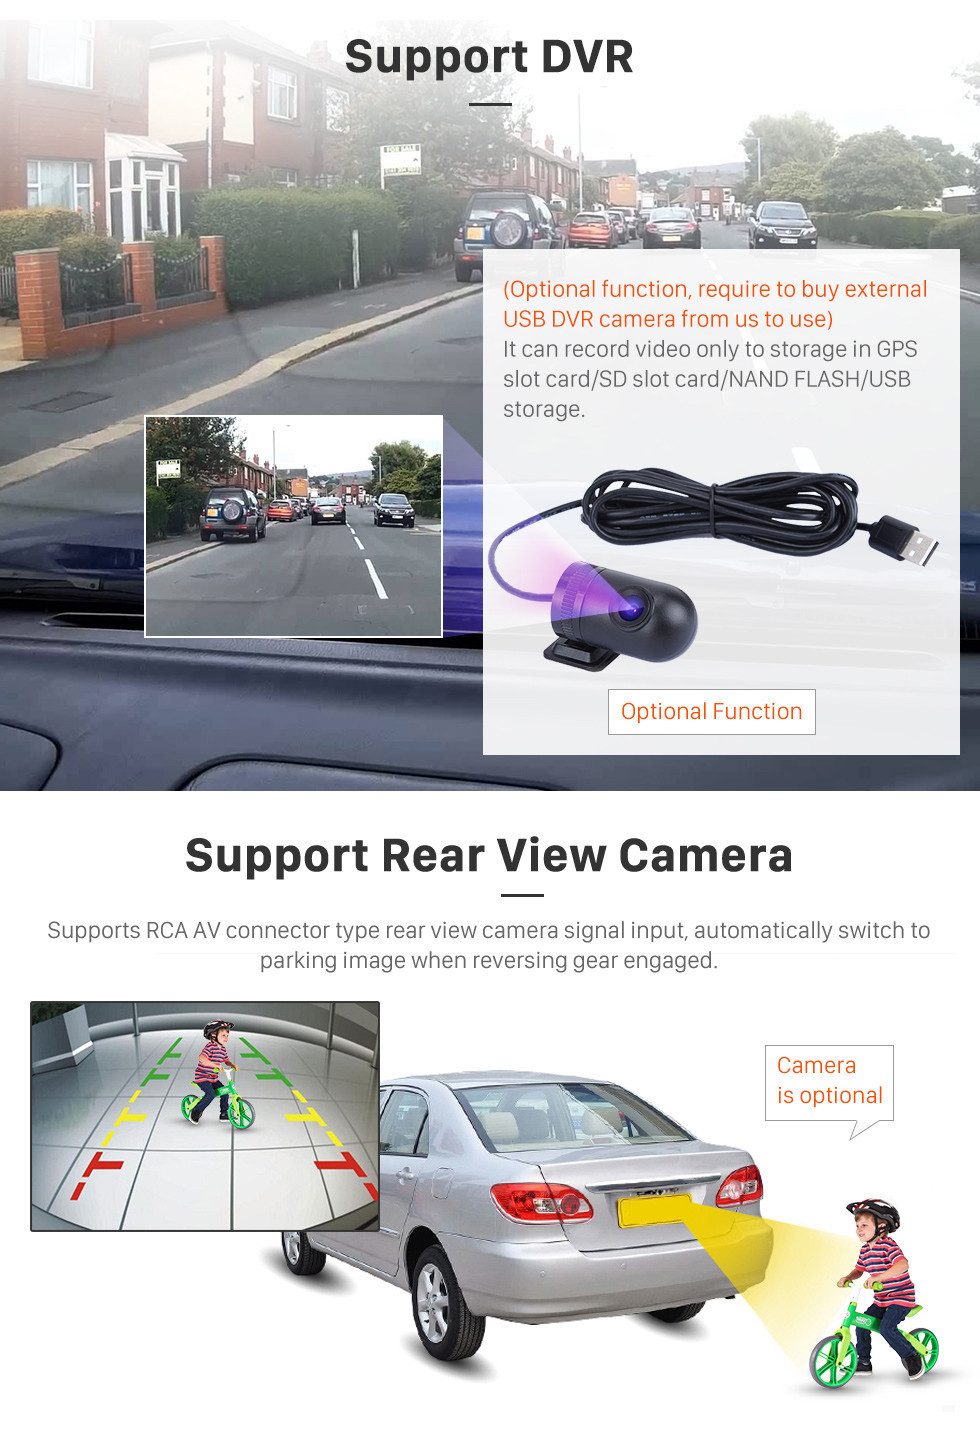 Seicane 9 inch Android 10.0 Radio GPS navigation system for 2007-2015 Suzuki SX4 with Bluetooth Mirror link HD 1024*600 touch screen DVD player OBD2 DVR Rearview camera TV 4G WIFI Steering Wheel Control 1080P Video USB